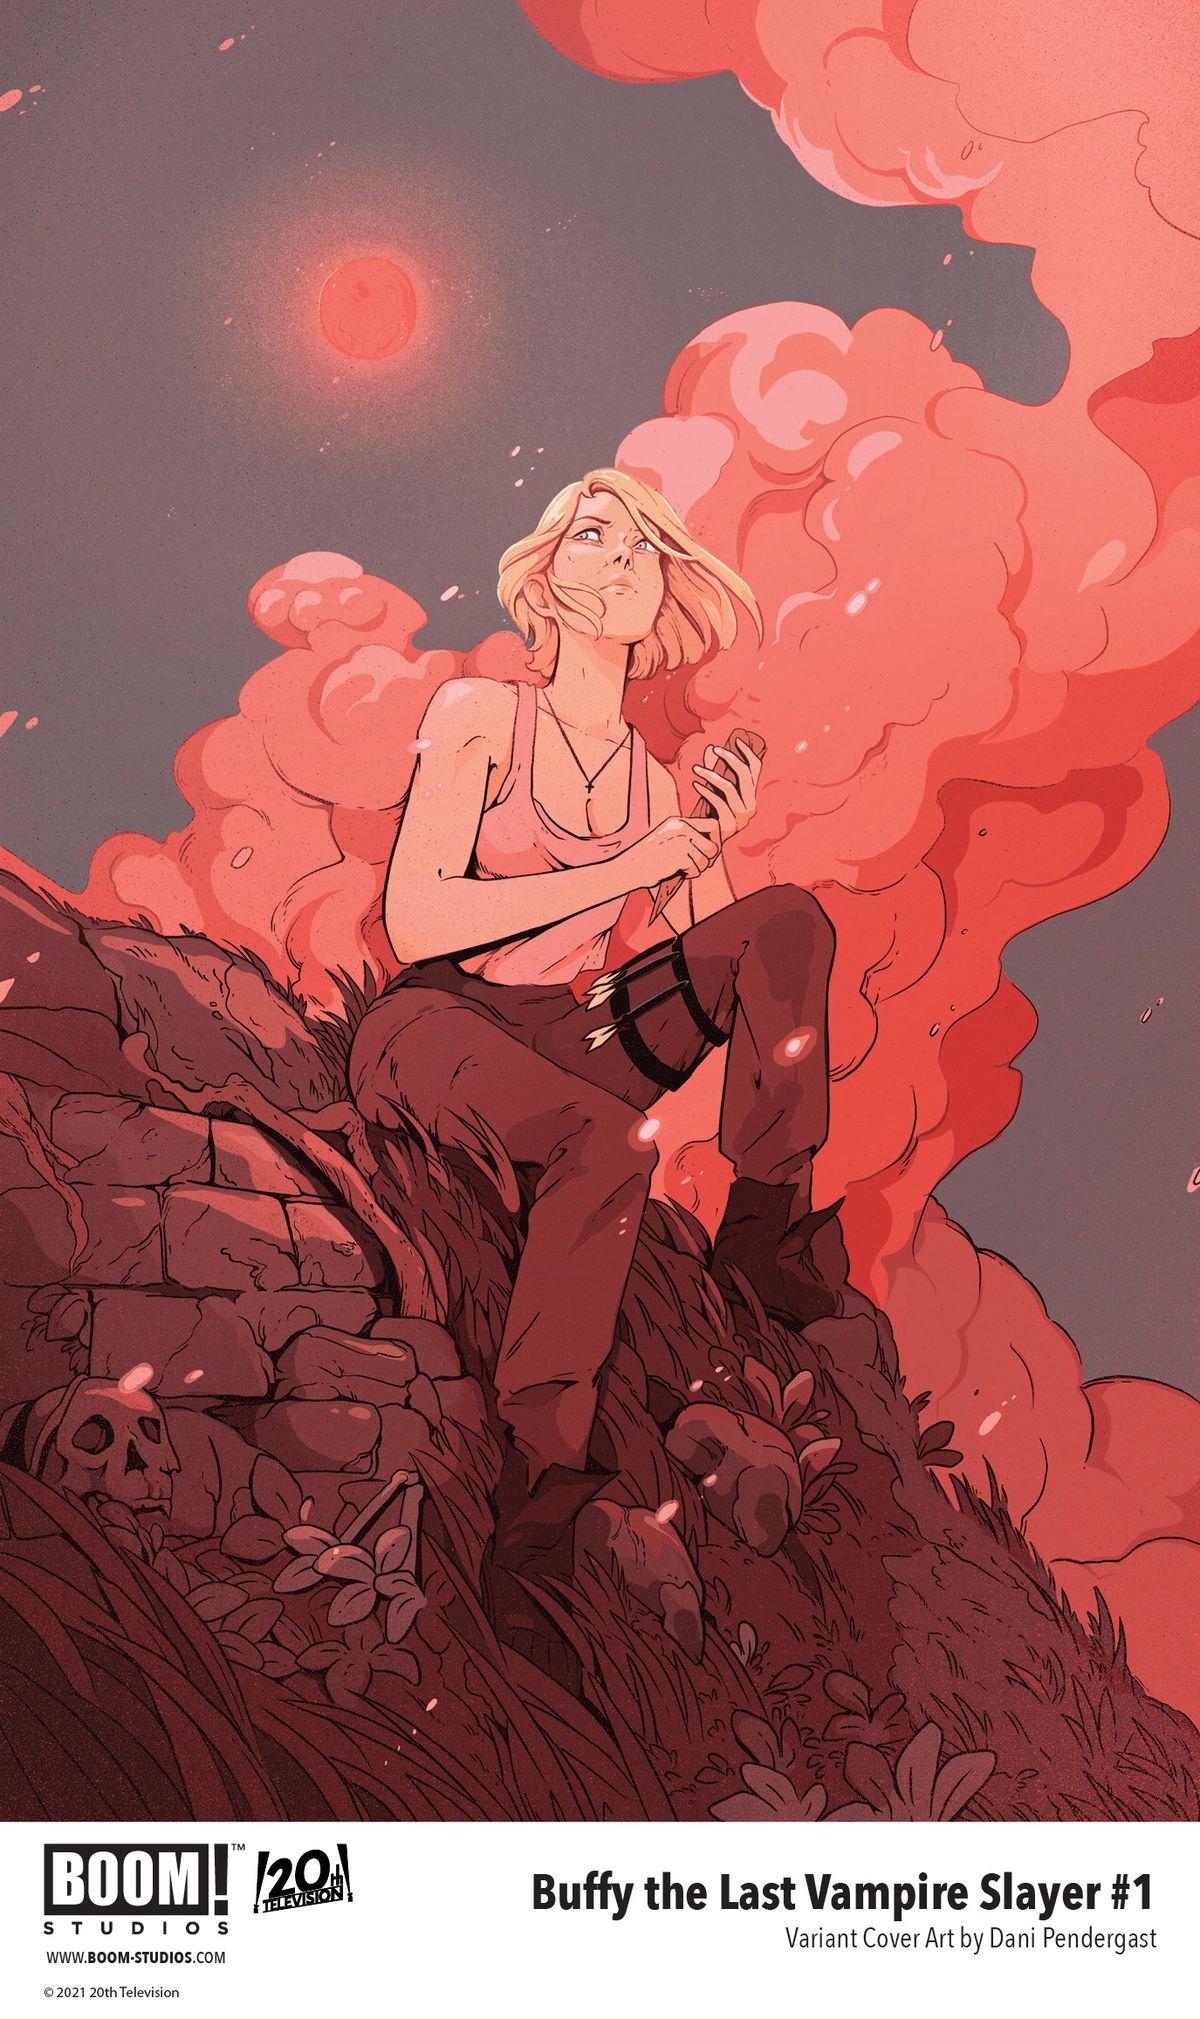 Buffy the Last Vampire Slayer - a variant cover for the first issue, showing an older Buffy Summers sitting on a dark hillside, surrounded by skulls, holding a stake.